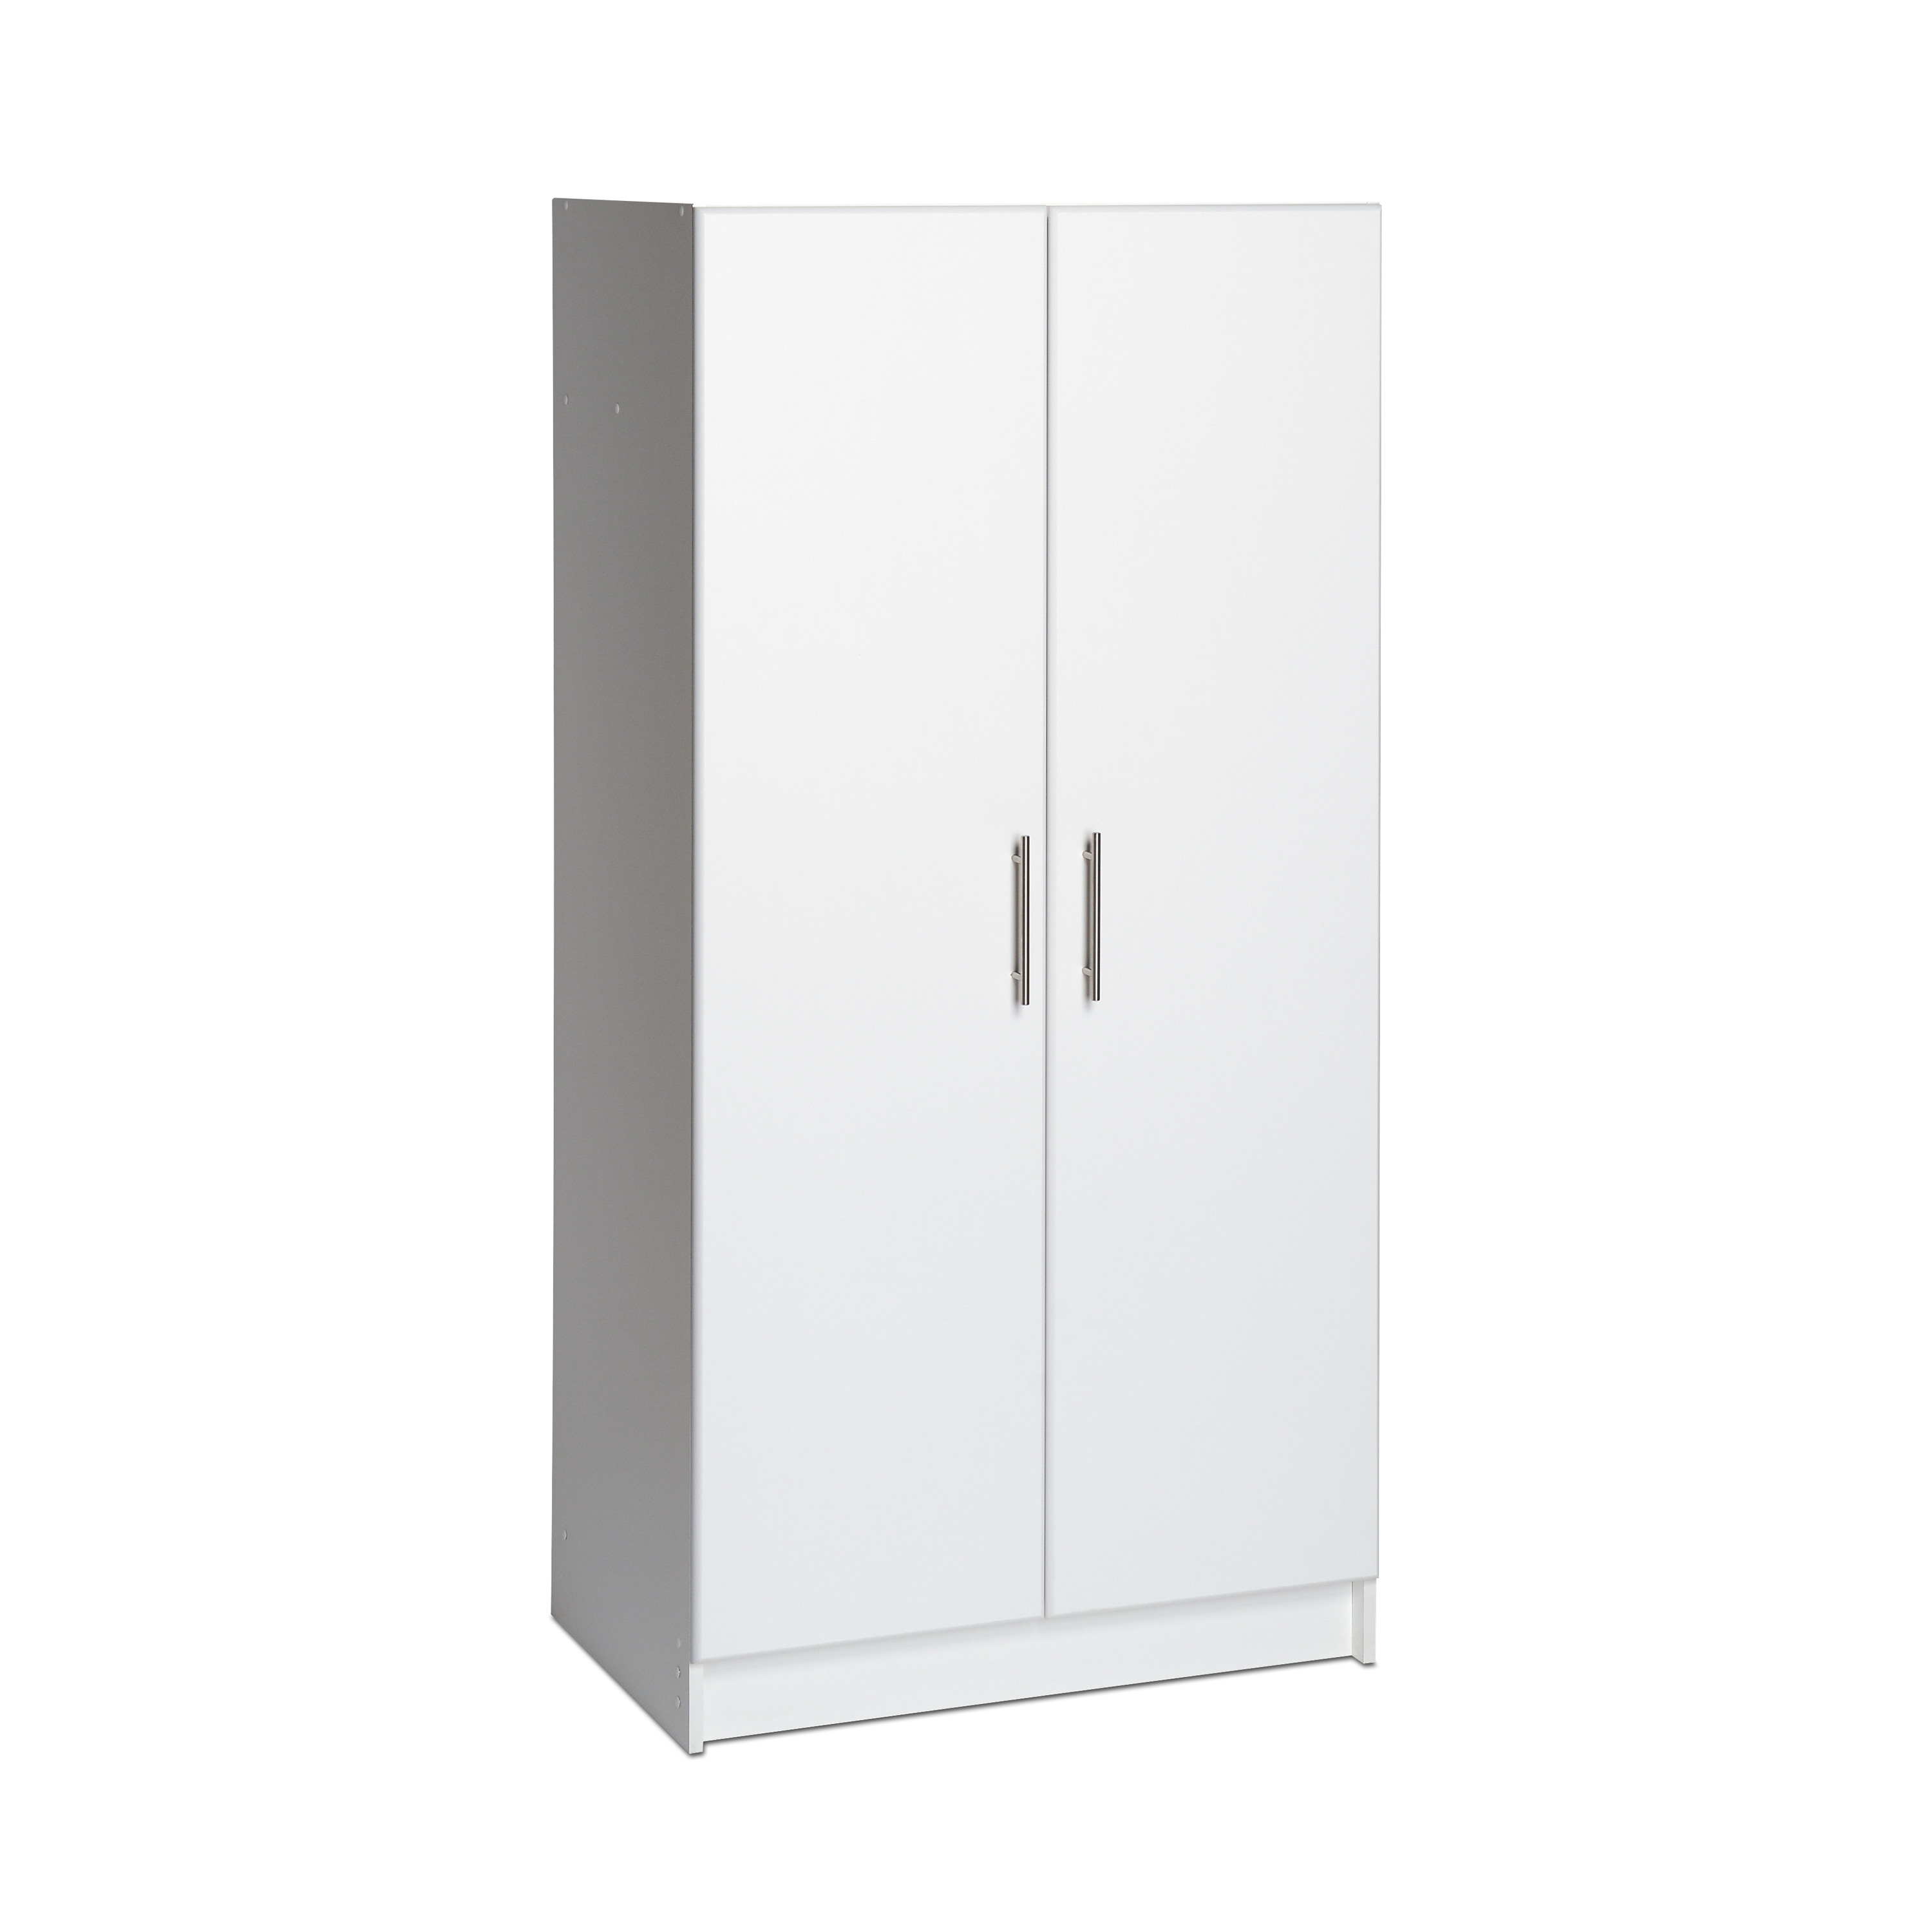 "Prepac 32"" Wardrobe Cabinet, White by Prepac Manufacturing Ltd"